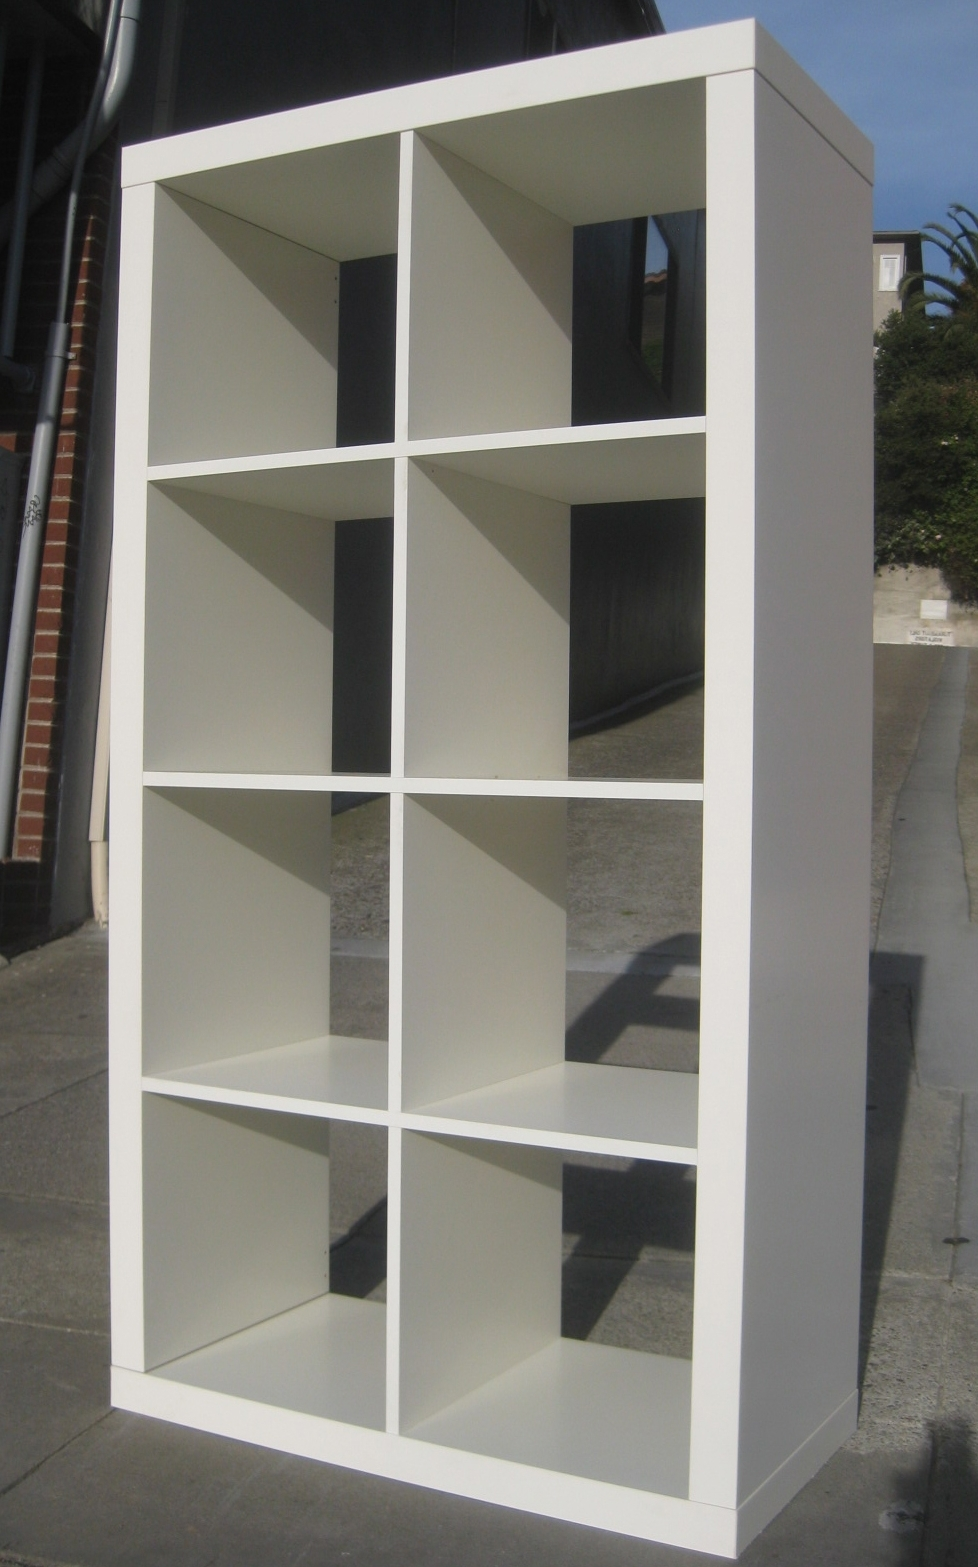 Preferred Uhuru Furniture & Collectibles: Sold – Ikea Cube Shelf – $45 With Regard To Ikea Cube Bookcases (View 12 of 15)